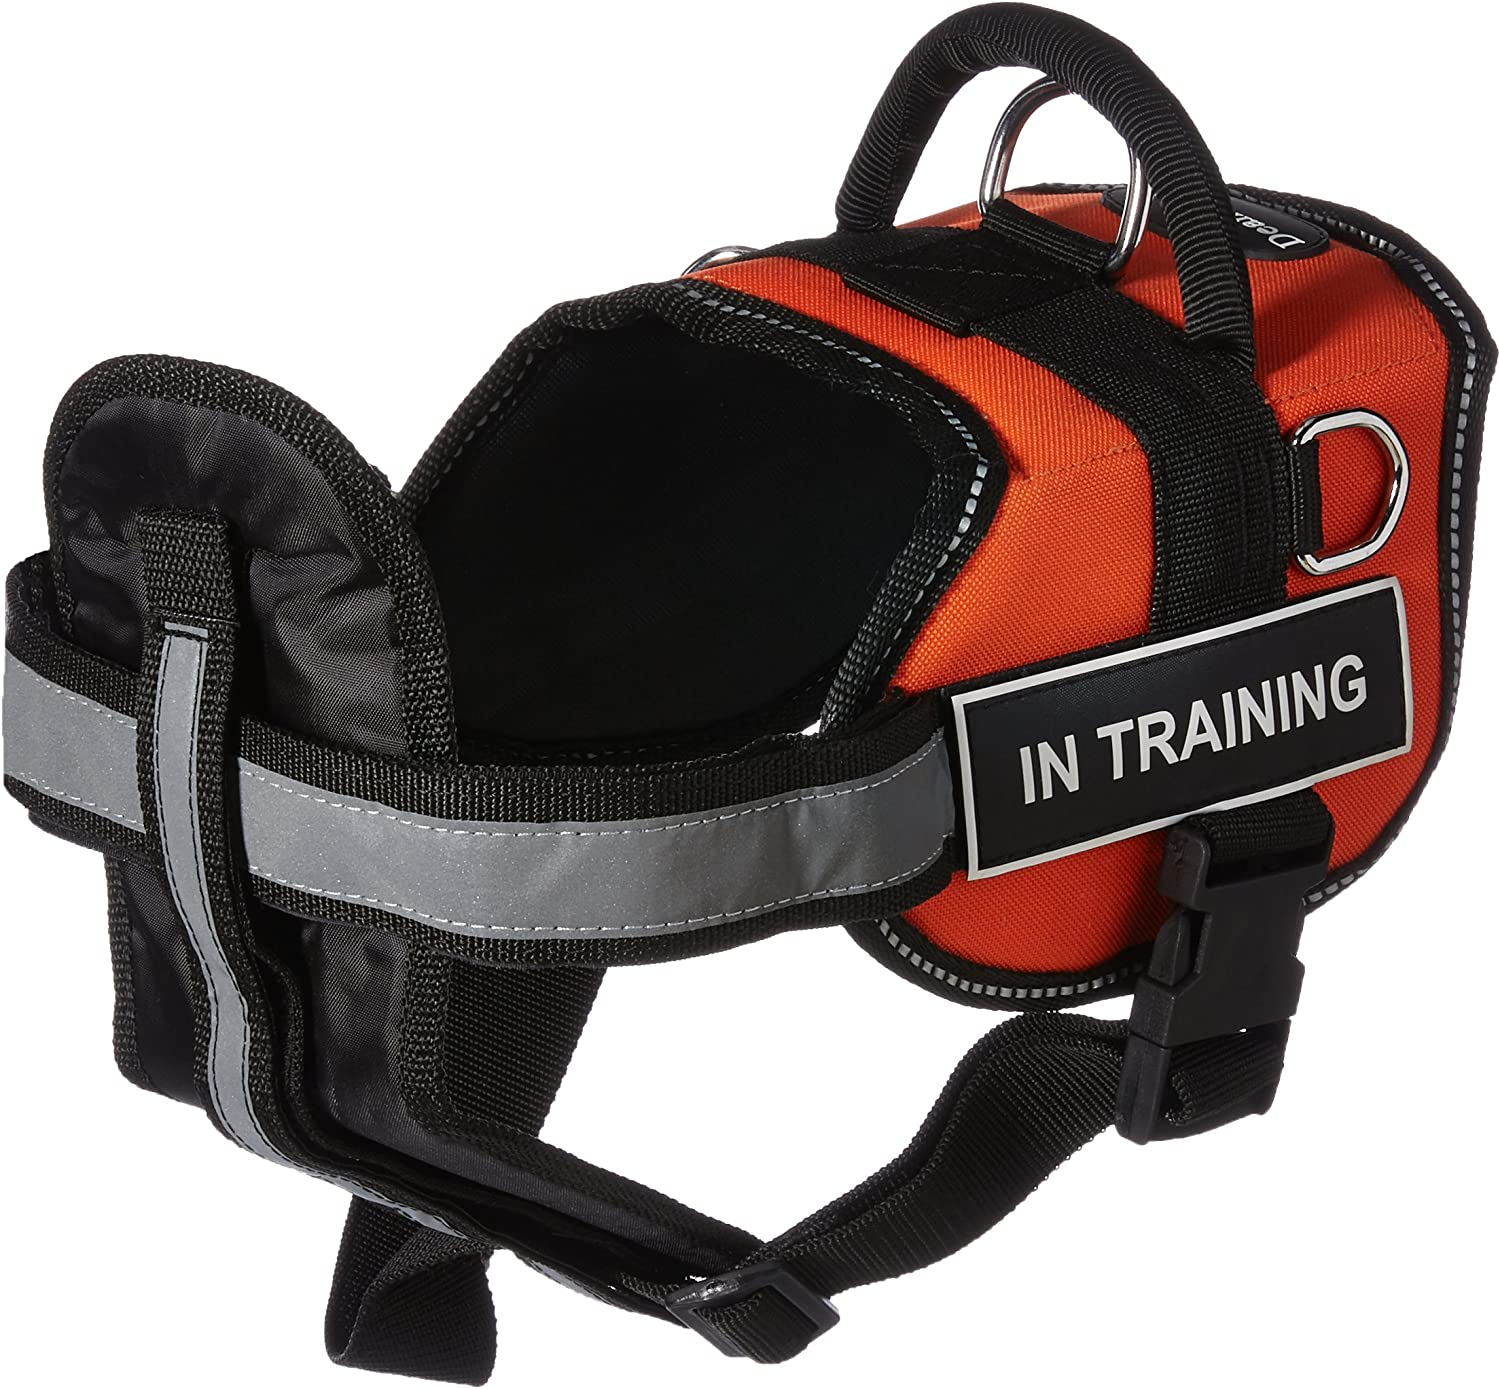 Dean & Tyler Bundle DT Works Medium orange Black In Training  Pet Harness with Chest Support and 6Feet Stainless Snap Padded Puppy Leash